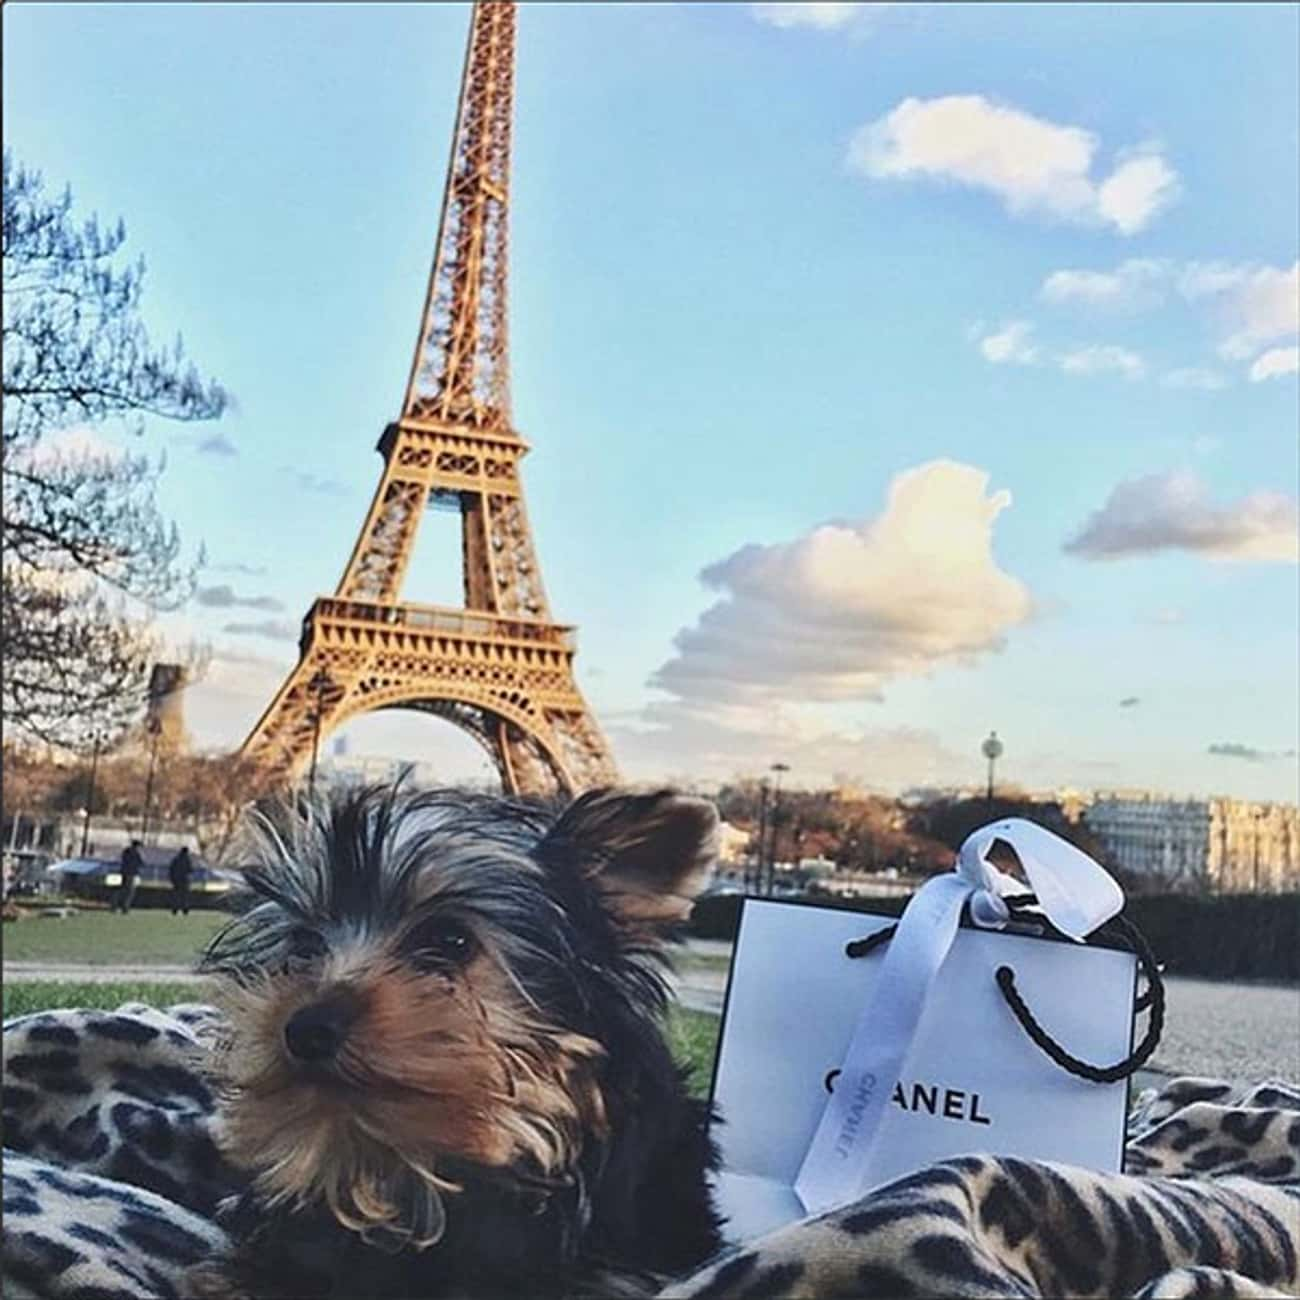 This Dog That Wishes You Had B is listed (or ranked) 2 on the list The Best of the Rich Dogs of Instagram